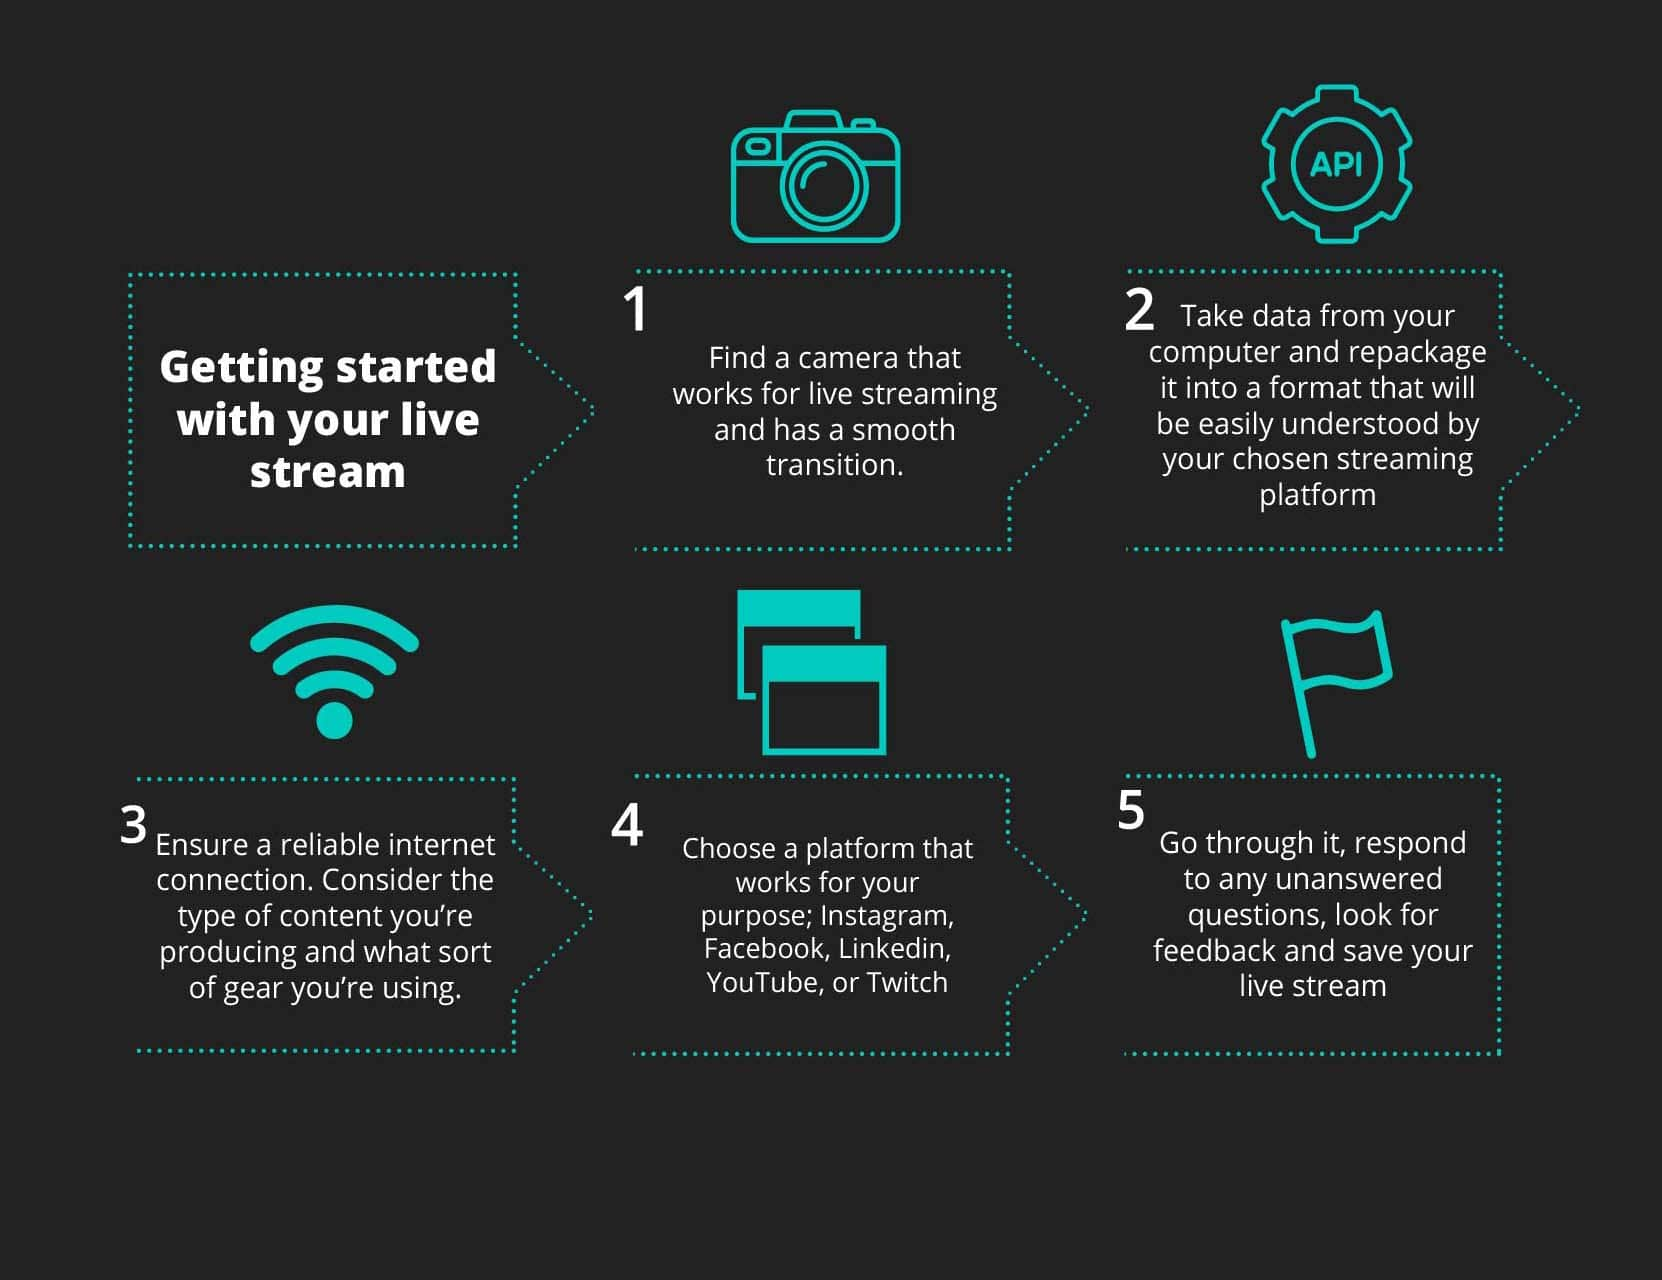 How to get started with live streaming, what you need to get started with a live streaming